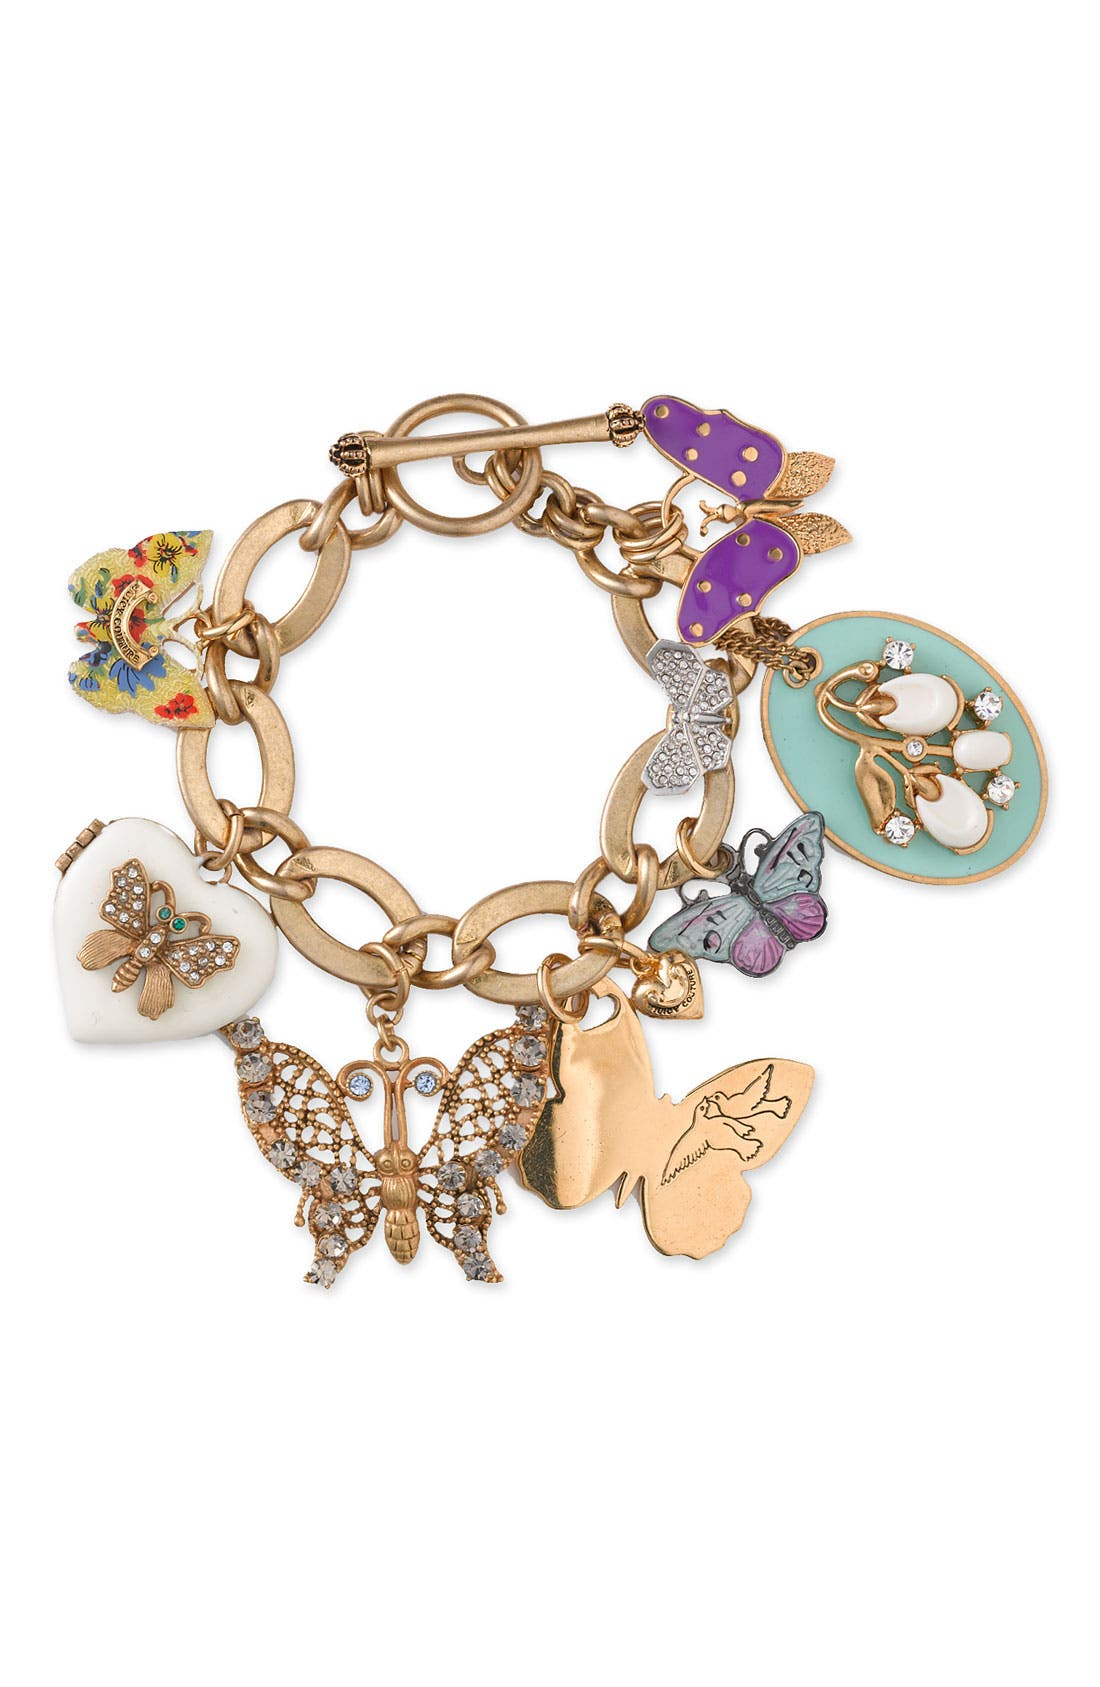 Main Image - Juicy Couture 'Flights of Fancy' Butterfly Charm Bracelet